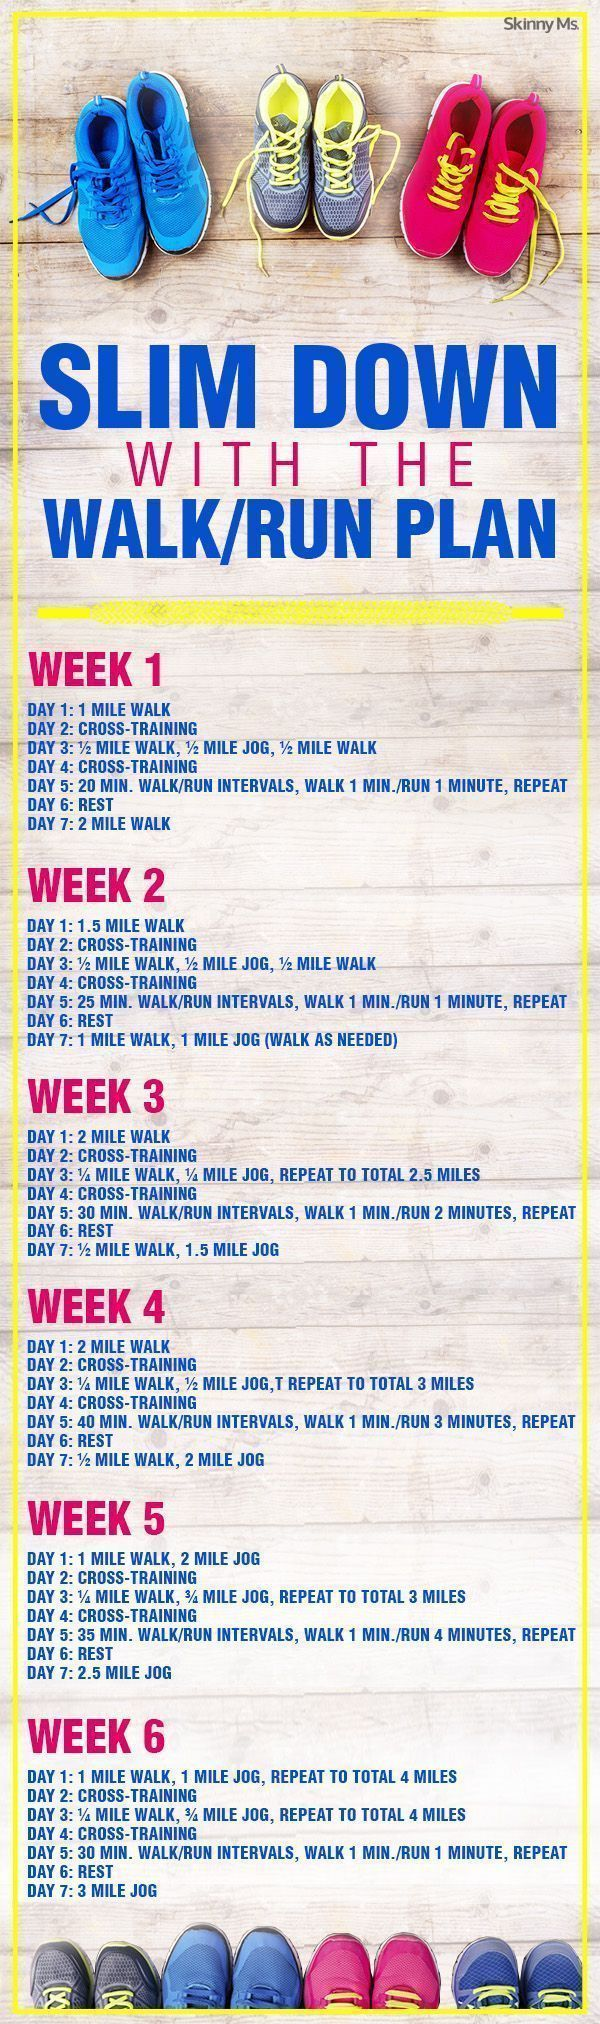 Slim Down With the Walk/Run Plan and shed unwanted weight!